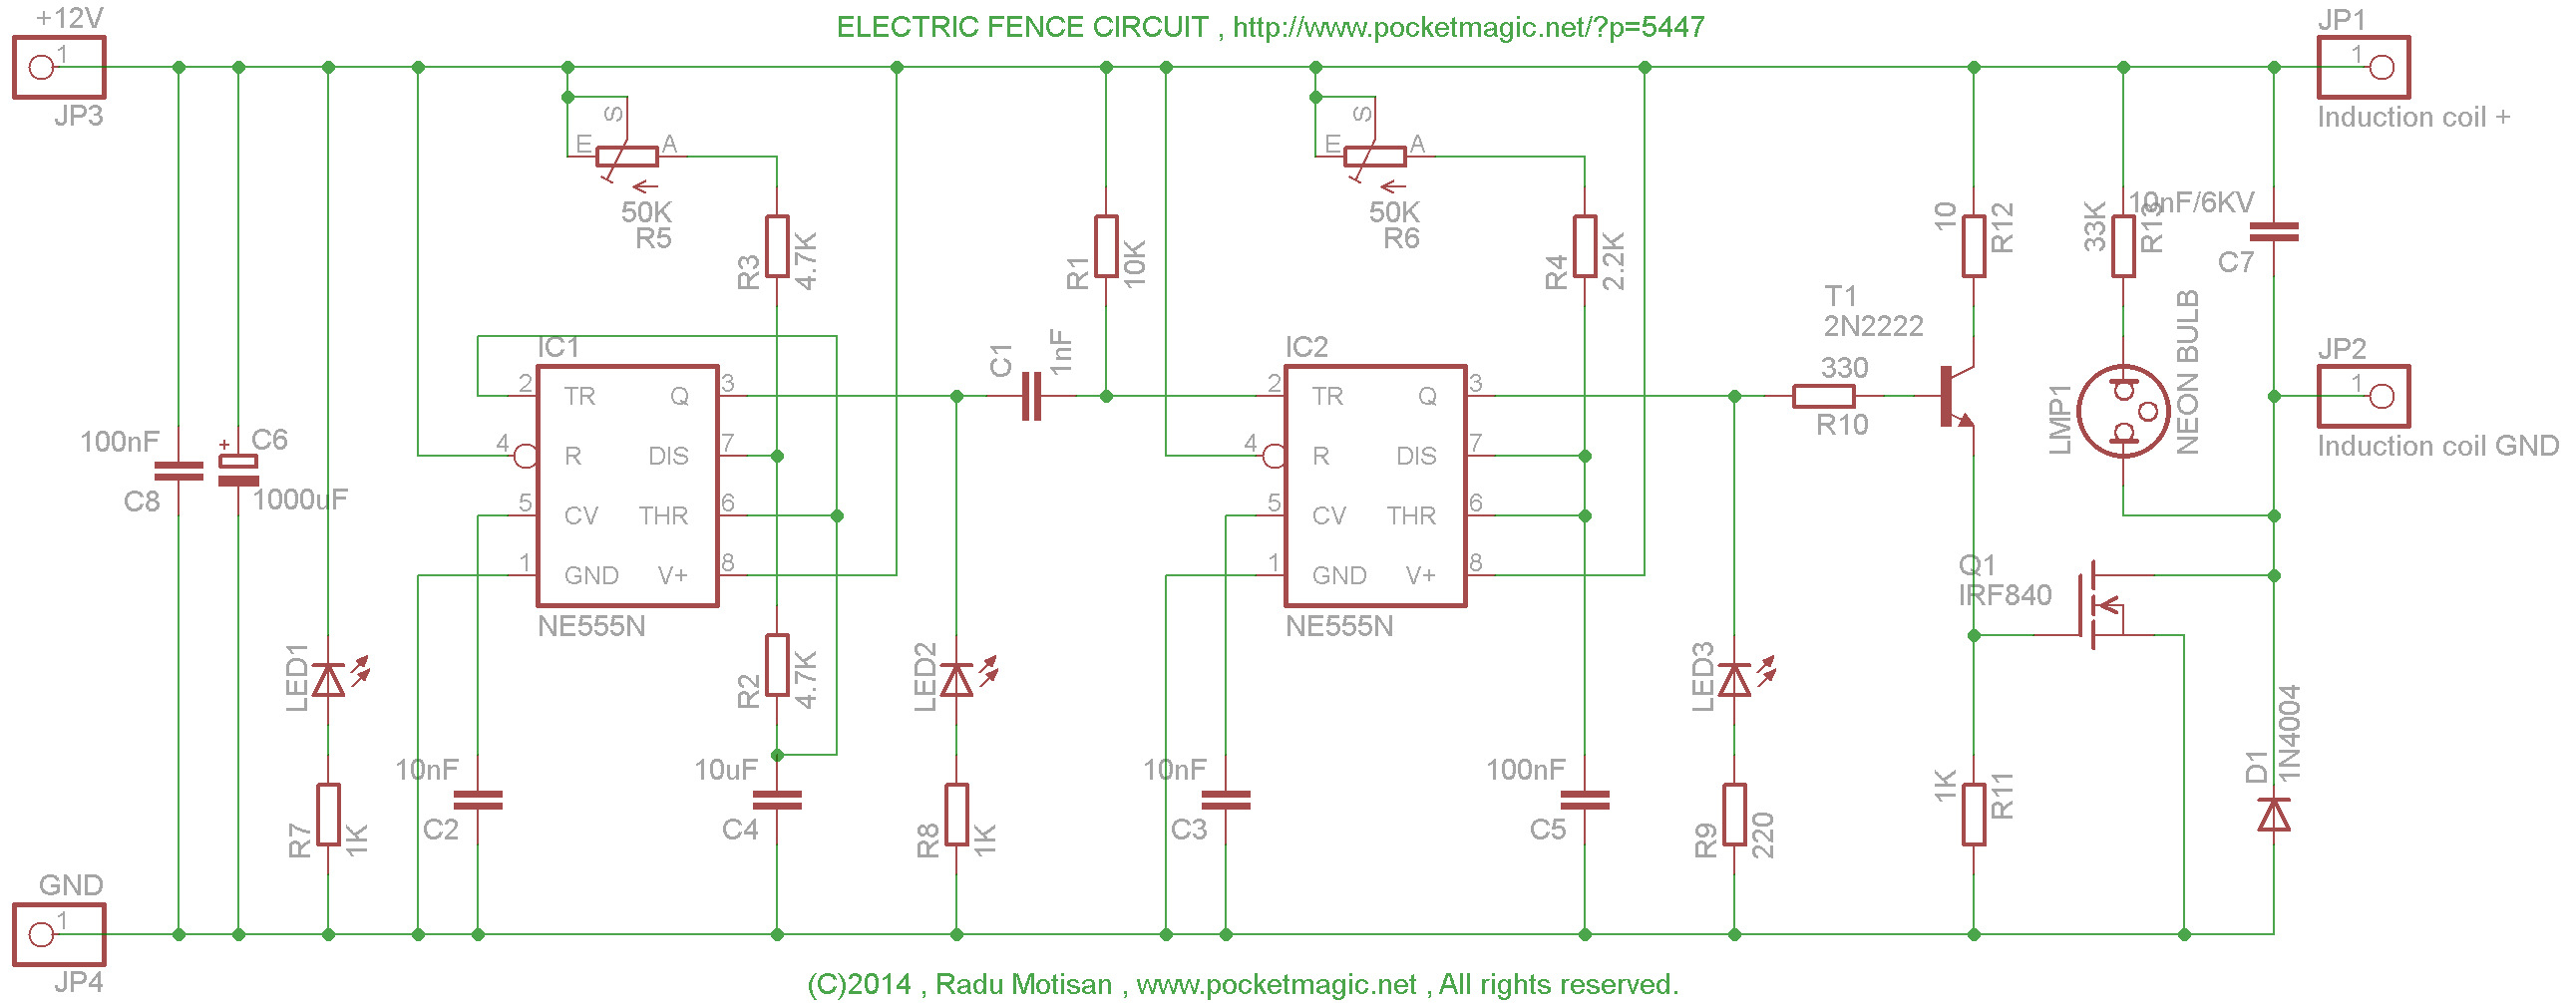 Diy Electric Fence Fresh Electric Fence Wiring Diagram Sample – Web - Electric Fence Wiring Diagram